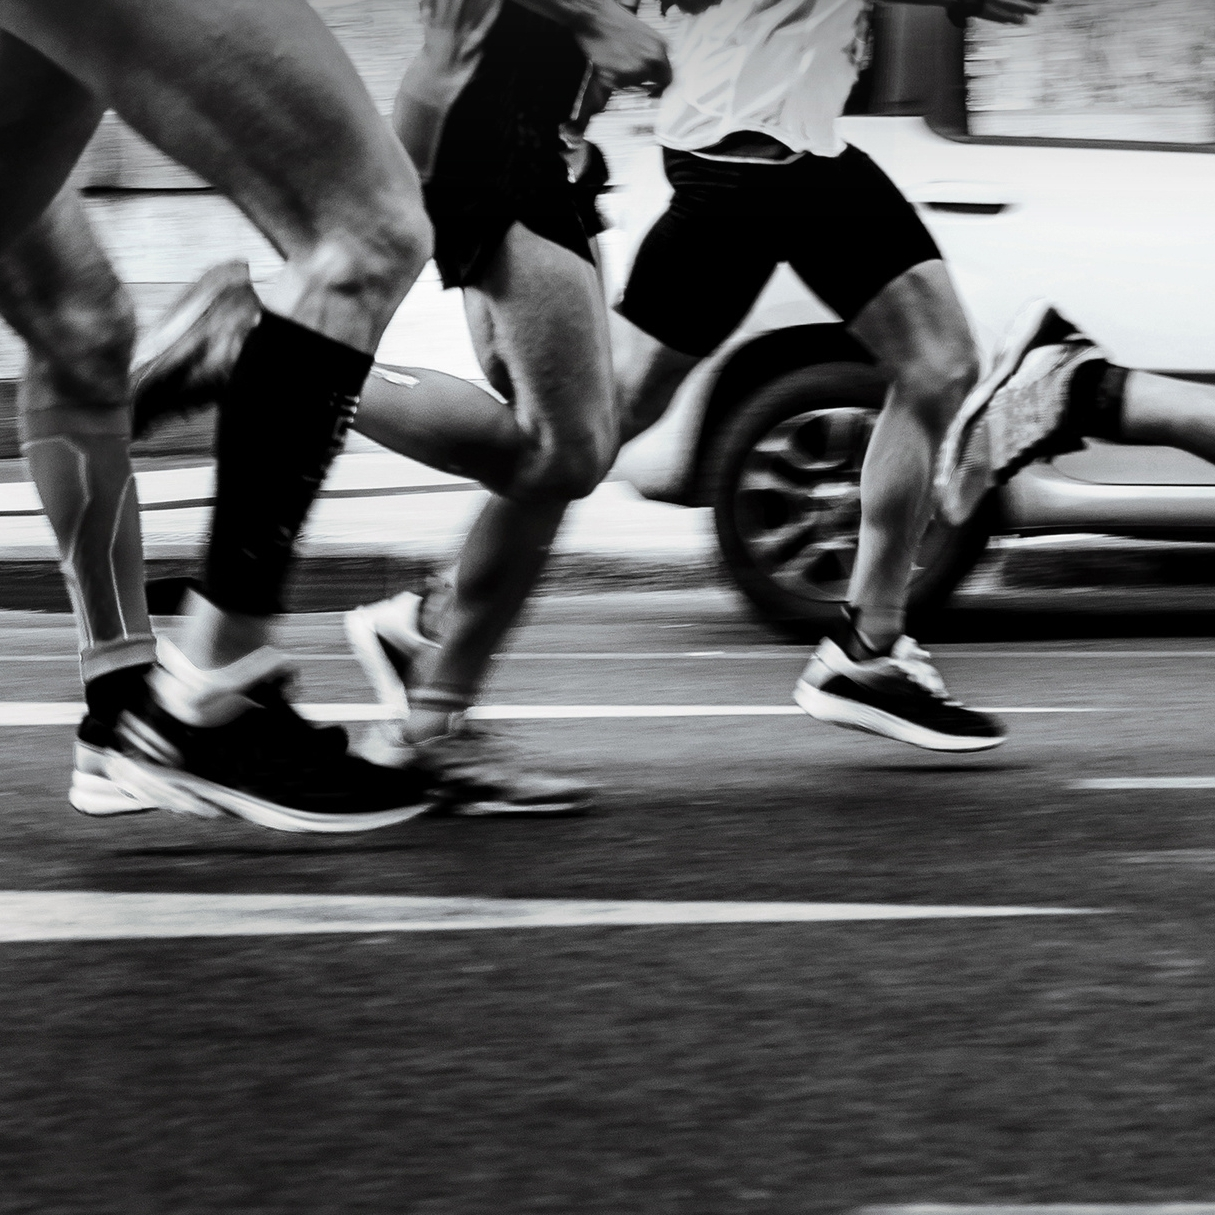 PICKING UP THE SPEED - Improve your PB timesDevelop explosive powerPrevent injury at higher speedsFIND OUT MORE